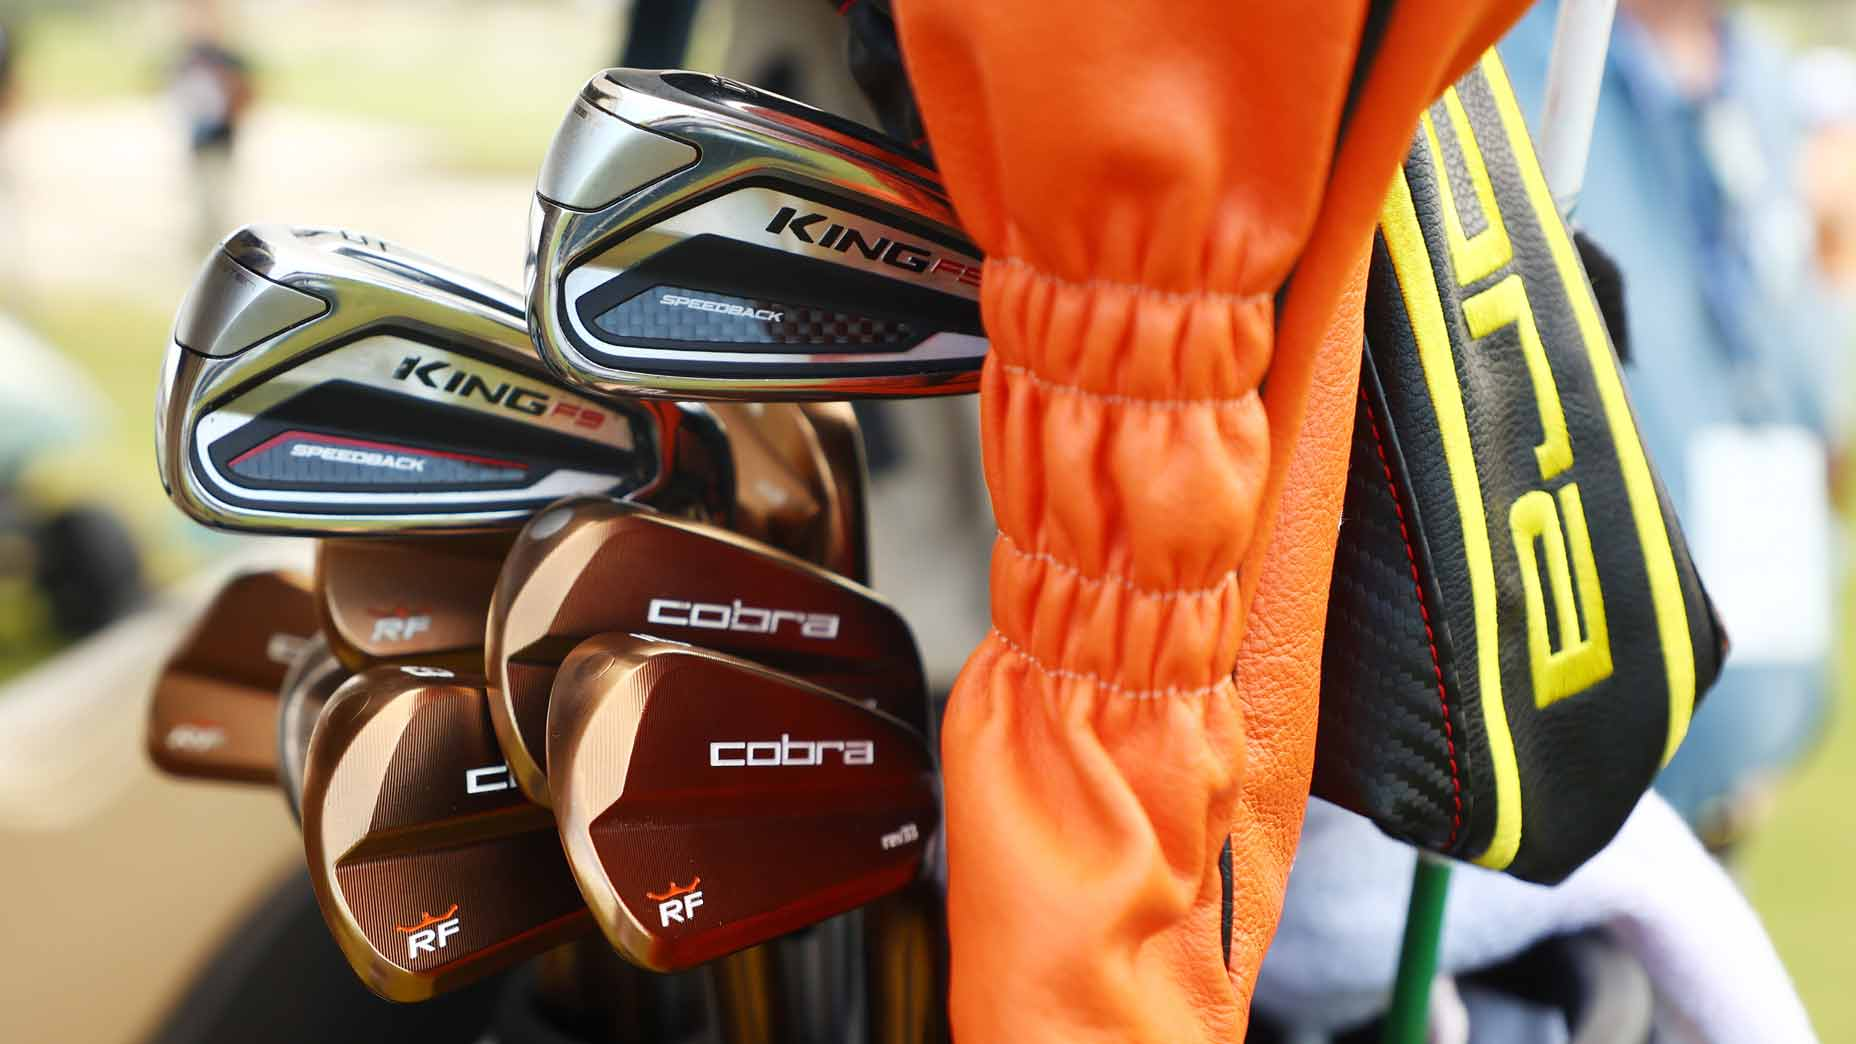 Here's how to try golf clubs and rangefinders before you buy them ...